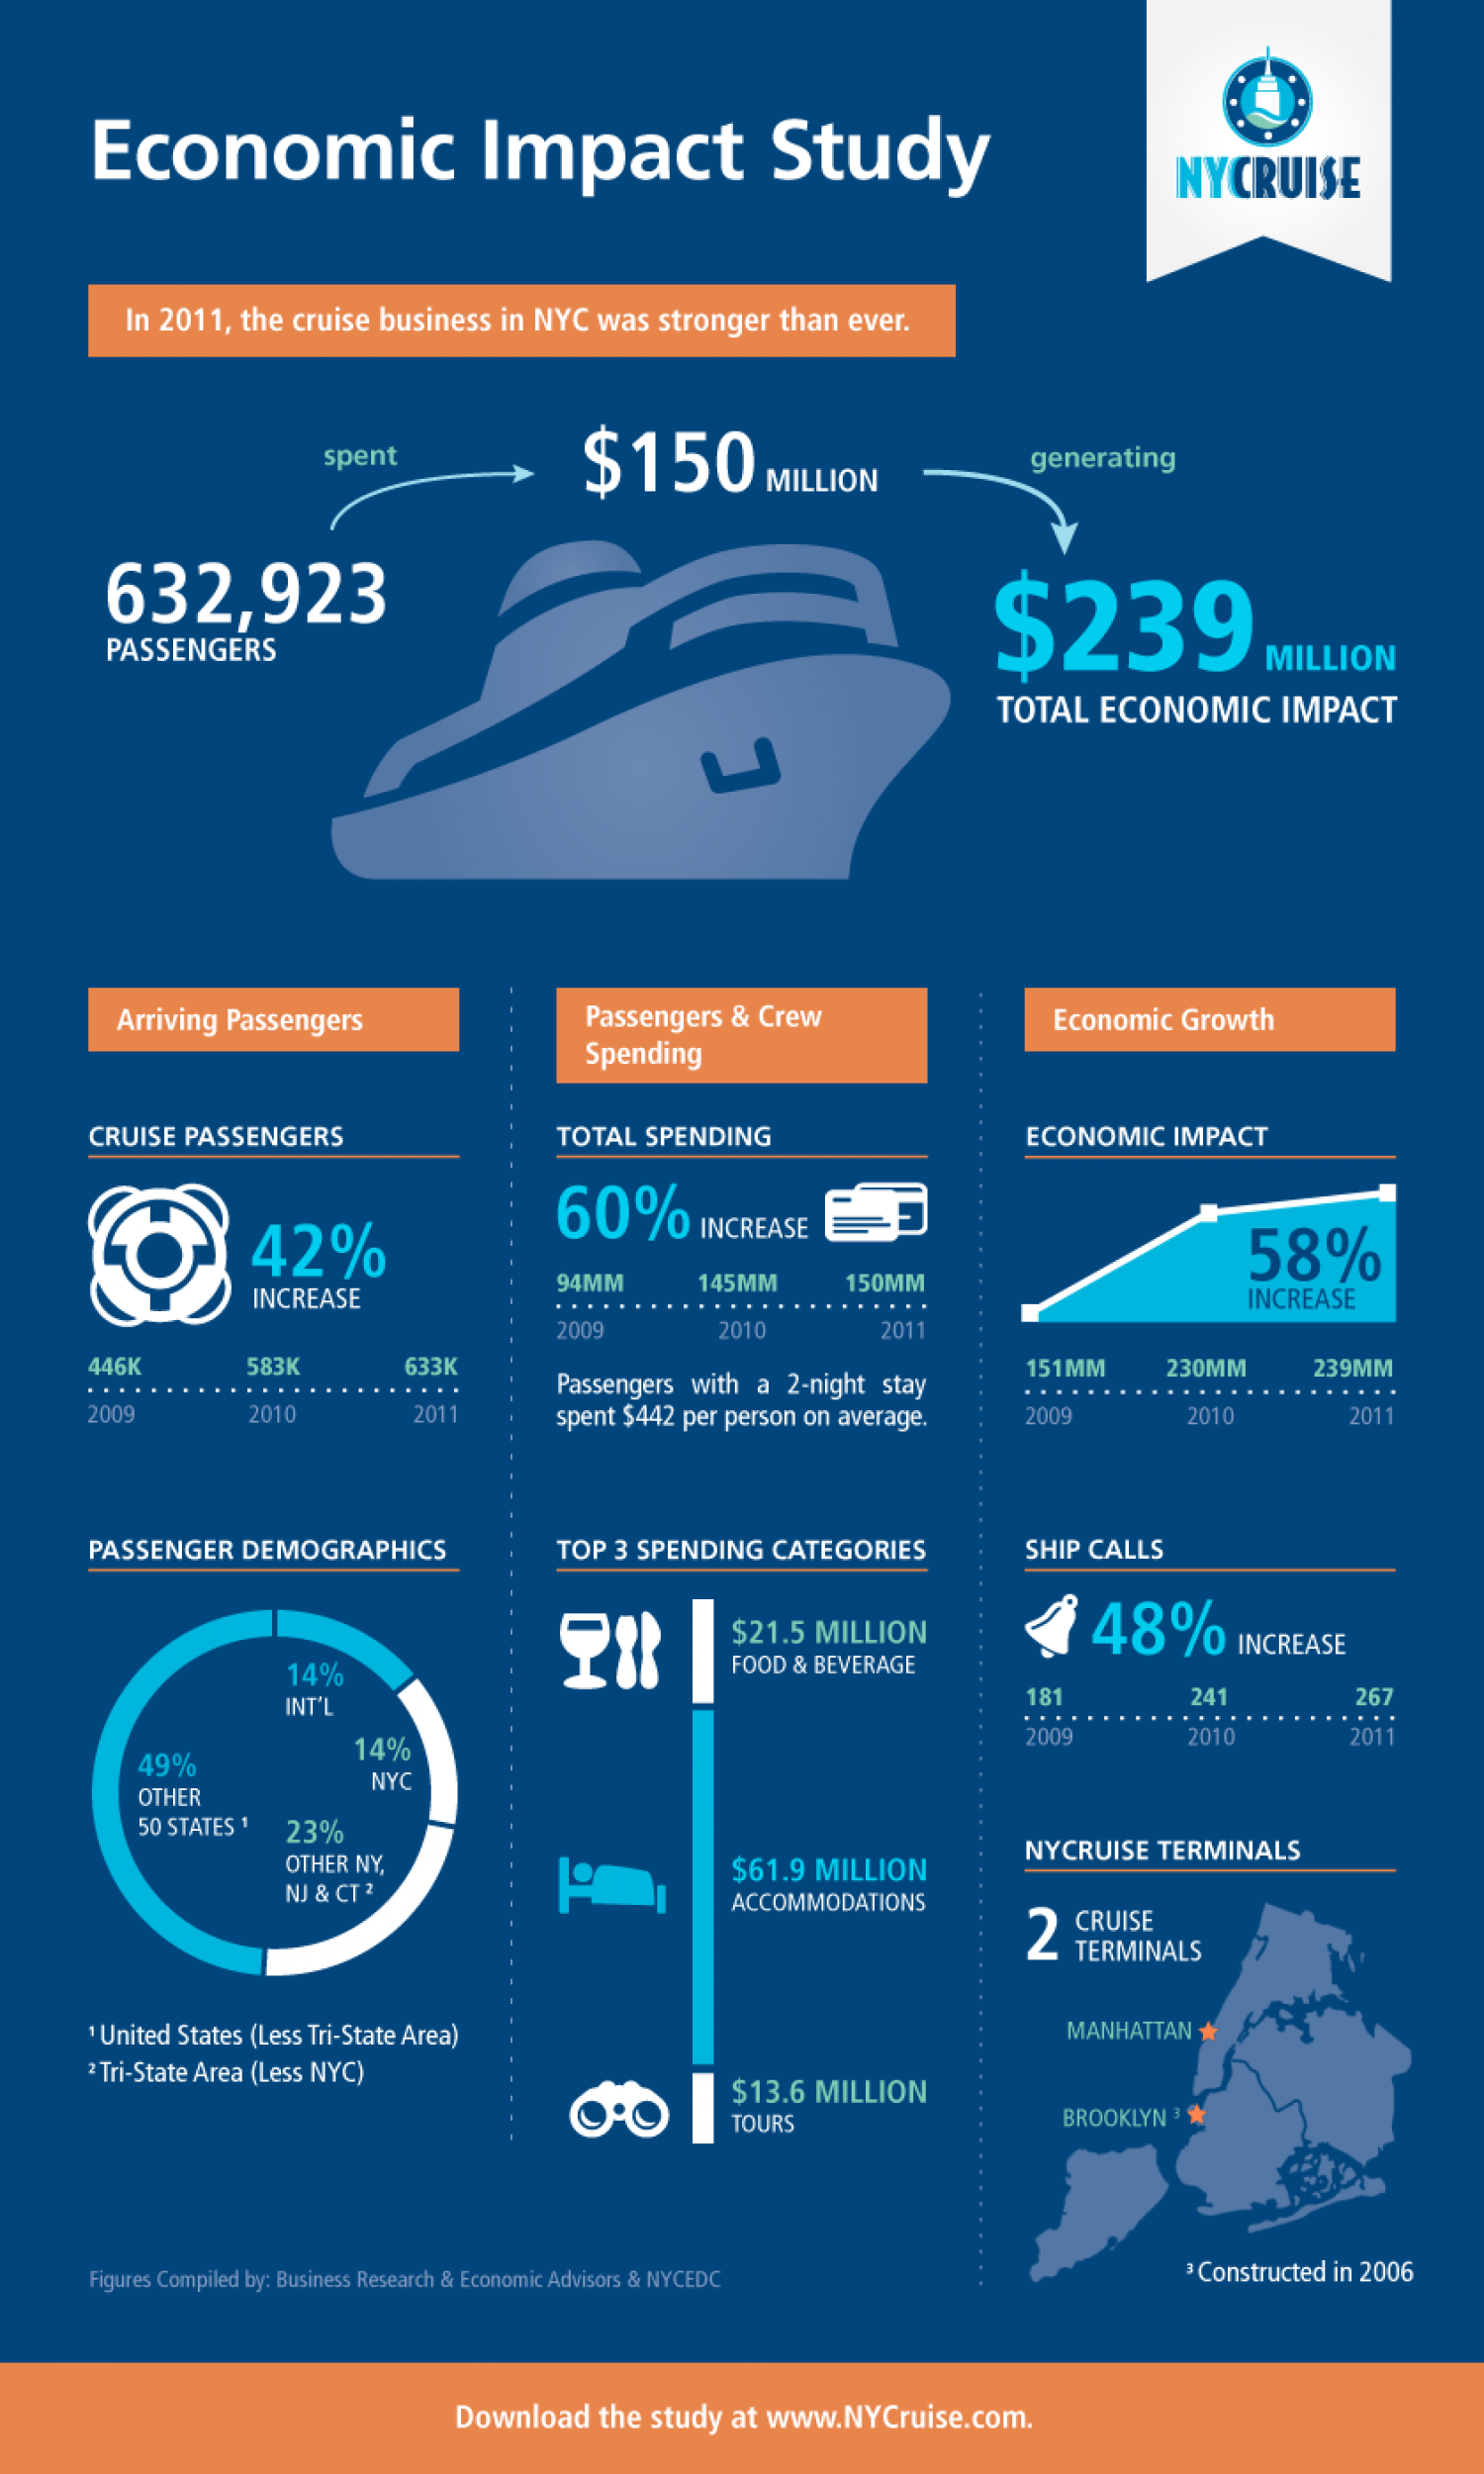 NYCruise 2011 Economic Impact Study Infographic